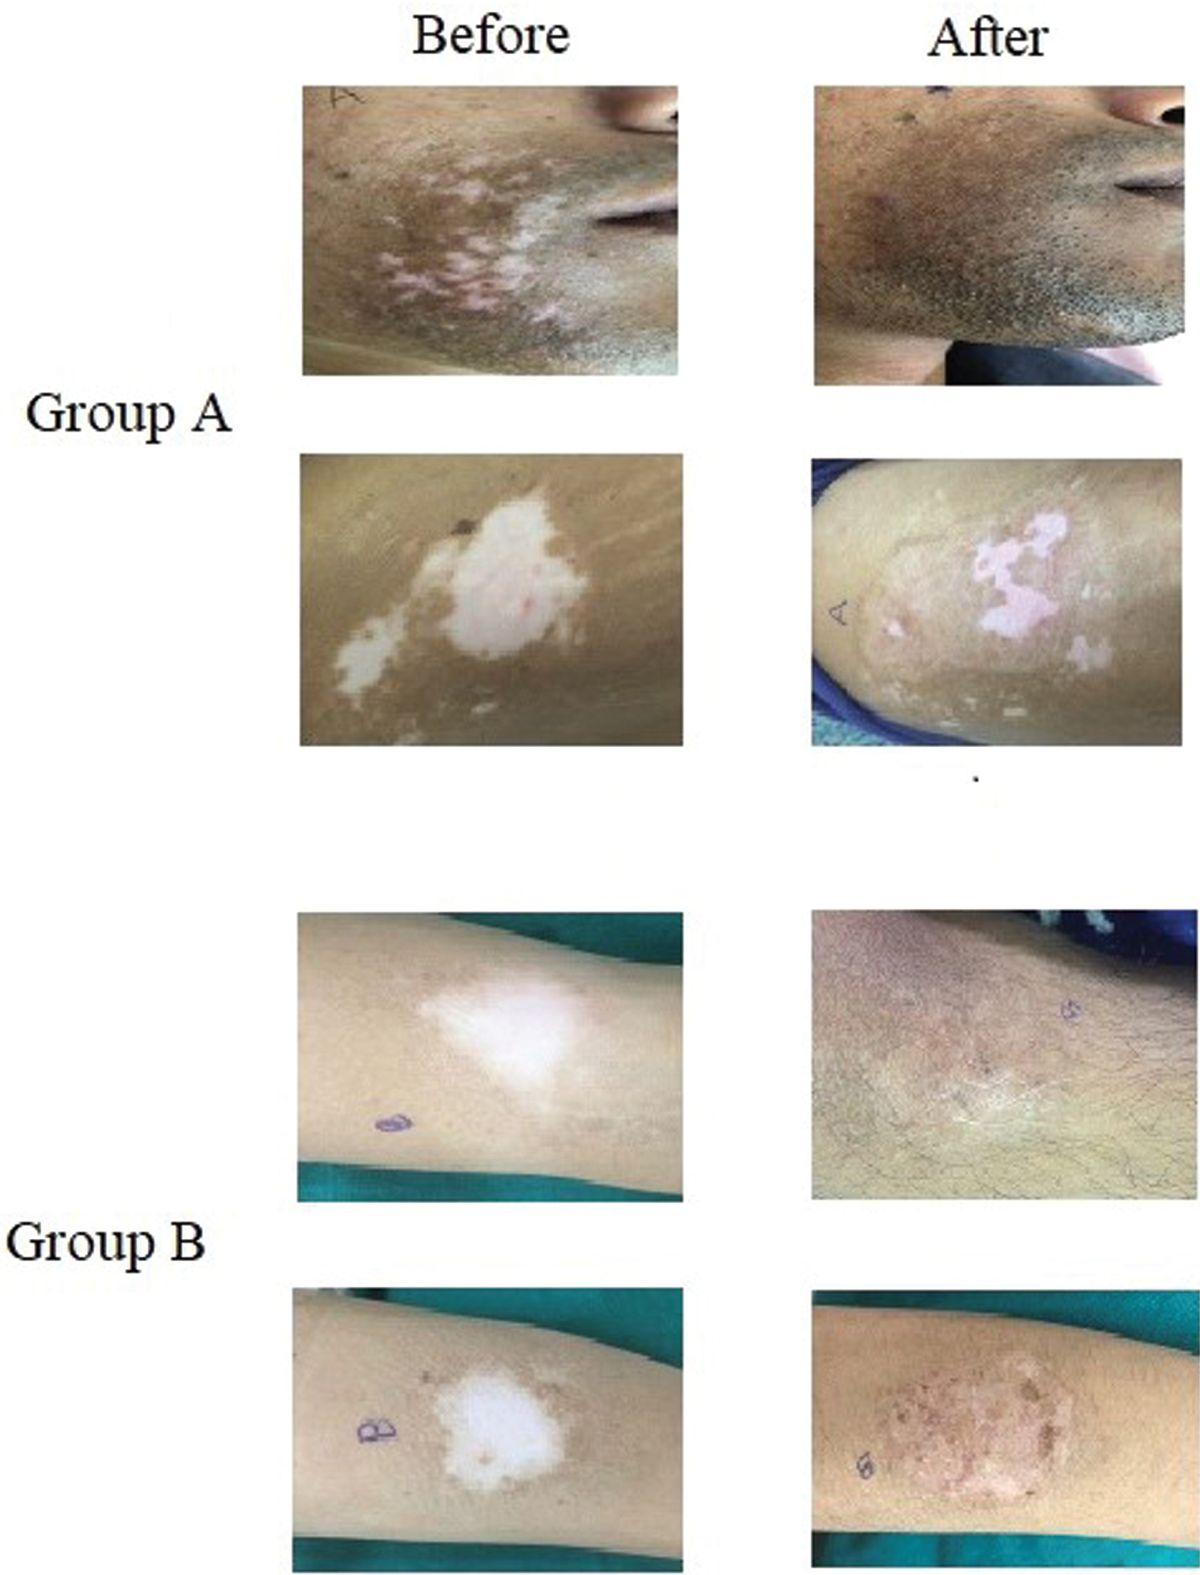 Figure 3 Preoperative and postoperative repigmentation in both the groups.